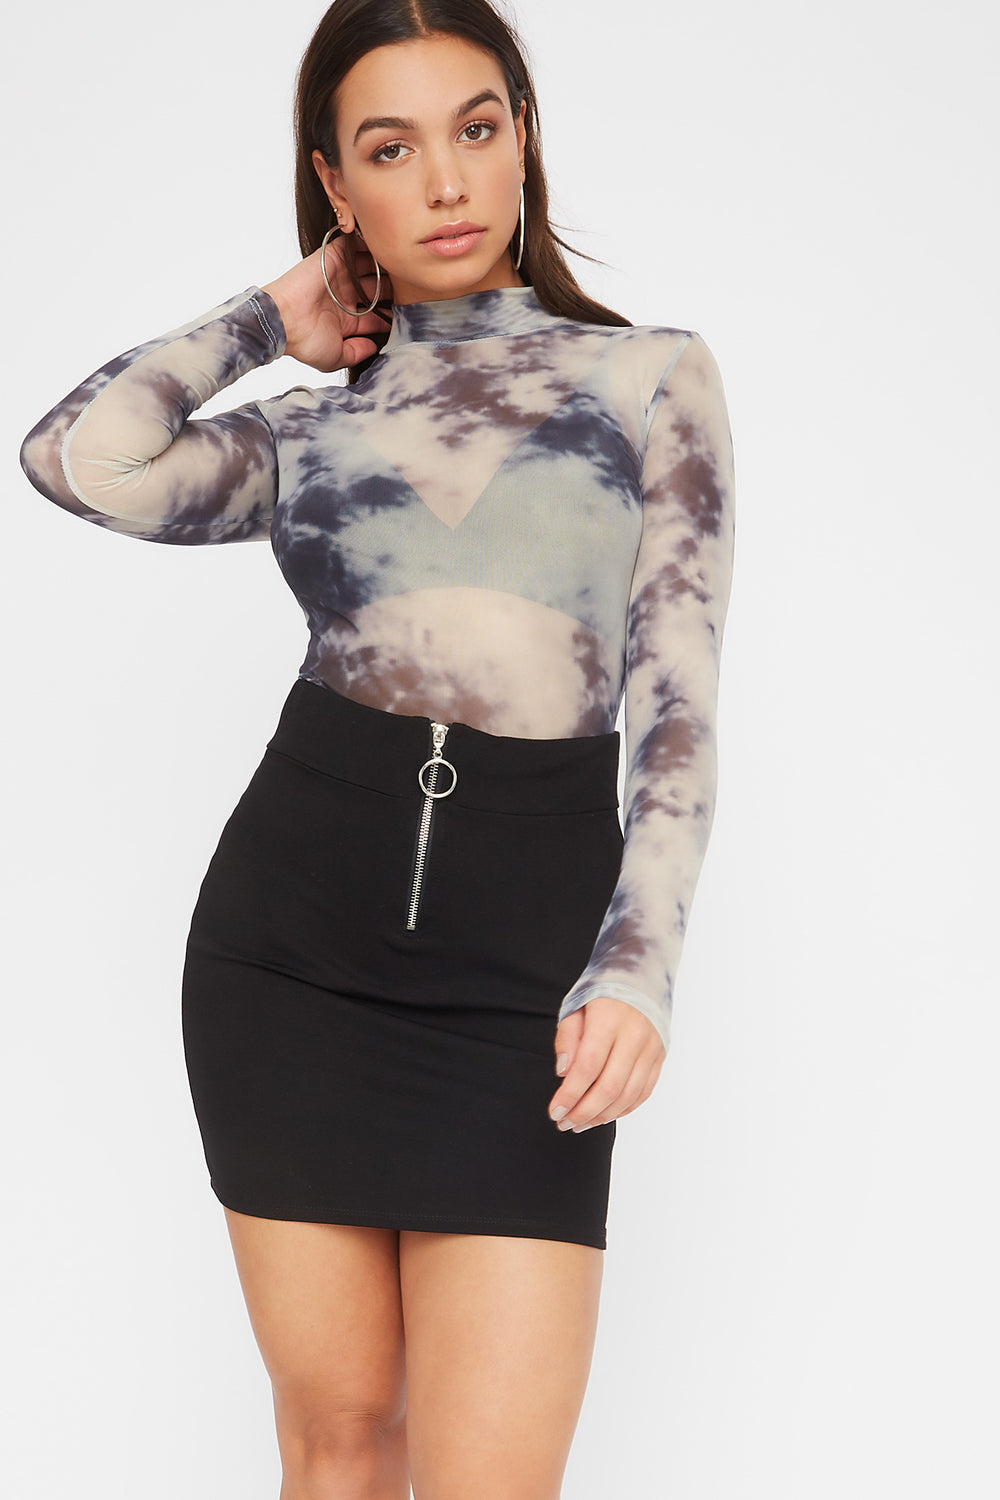 Printed Mesh Long Sleeve Bodysuit Black with White